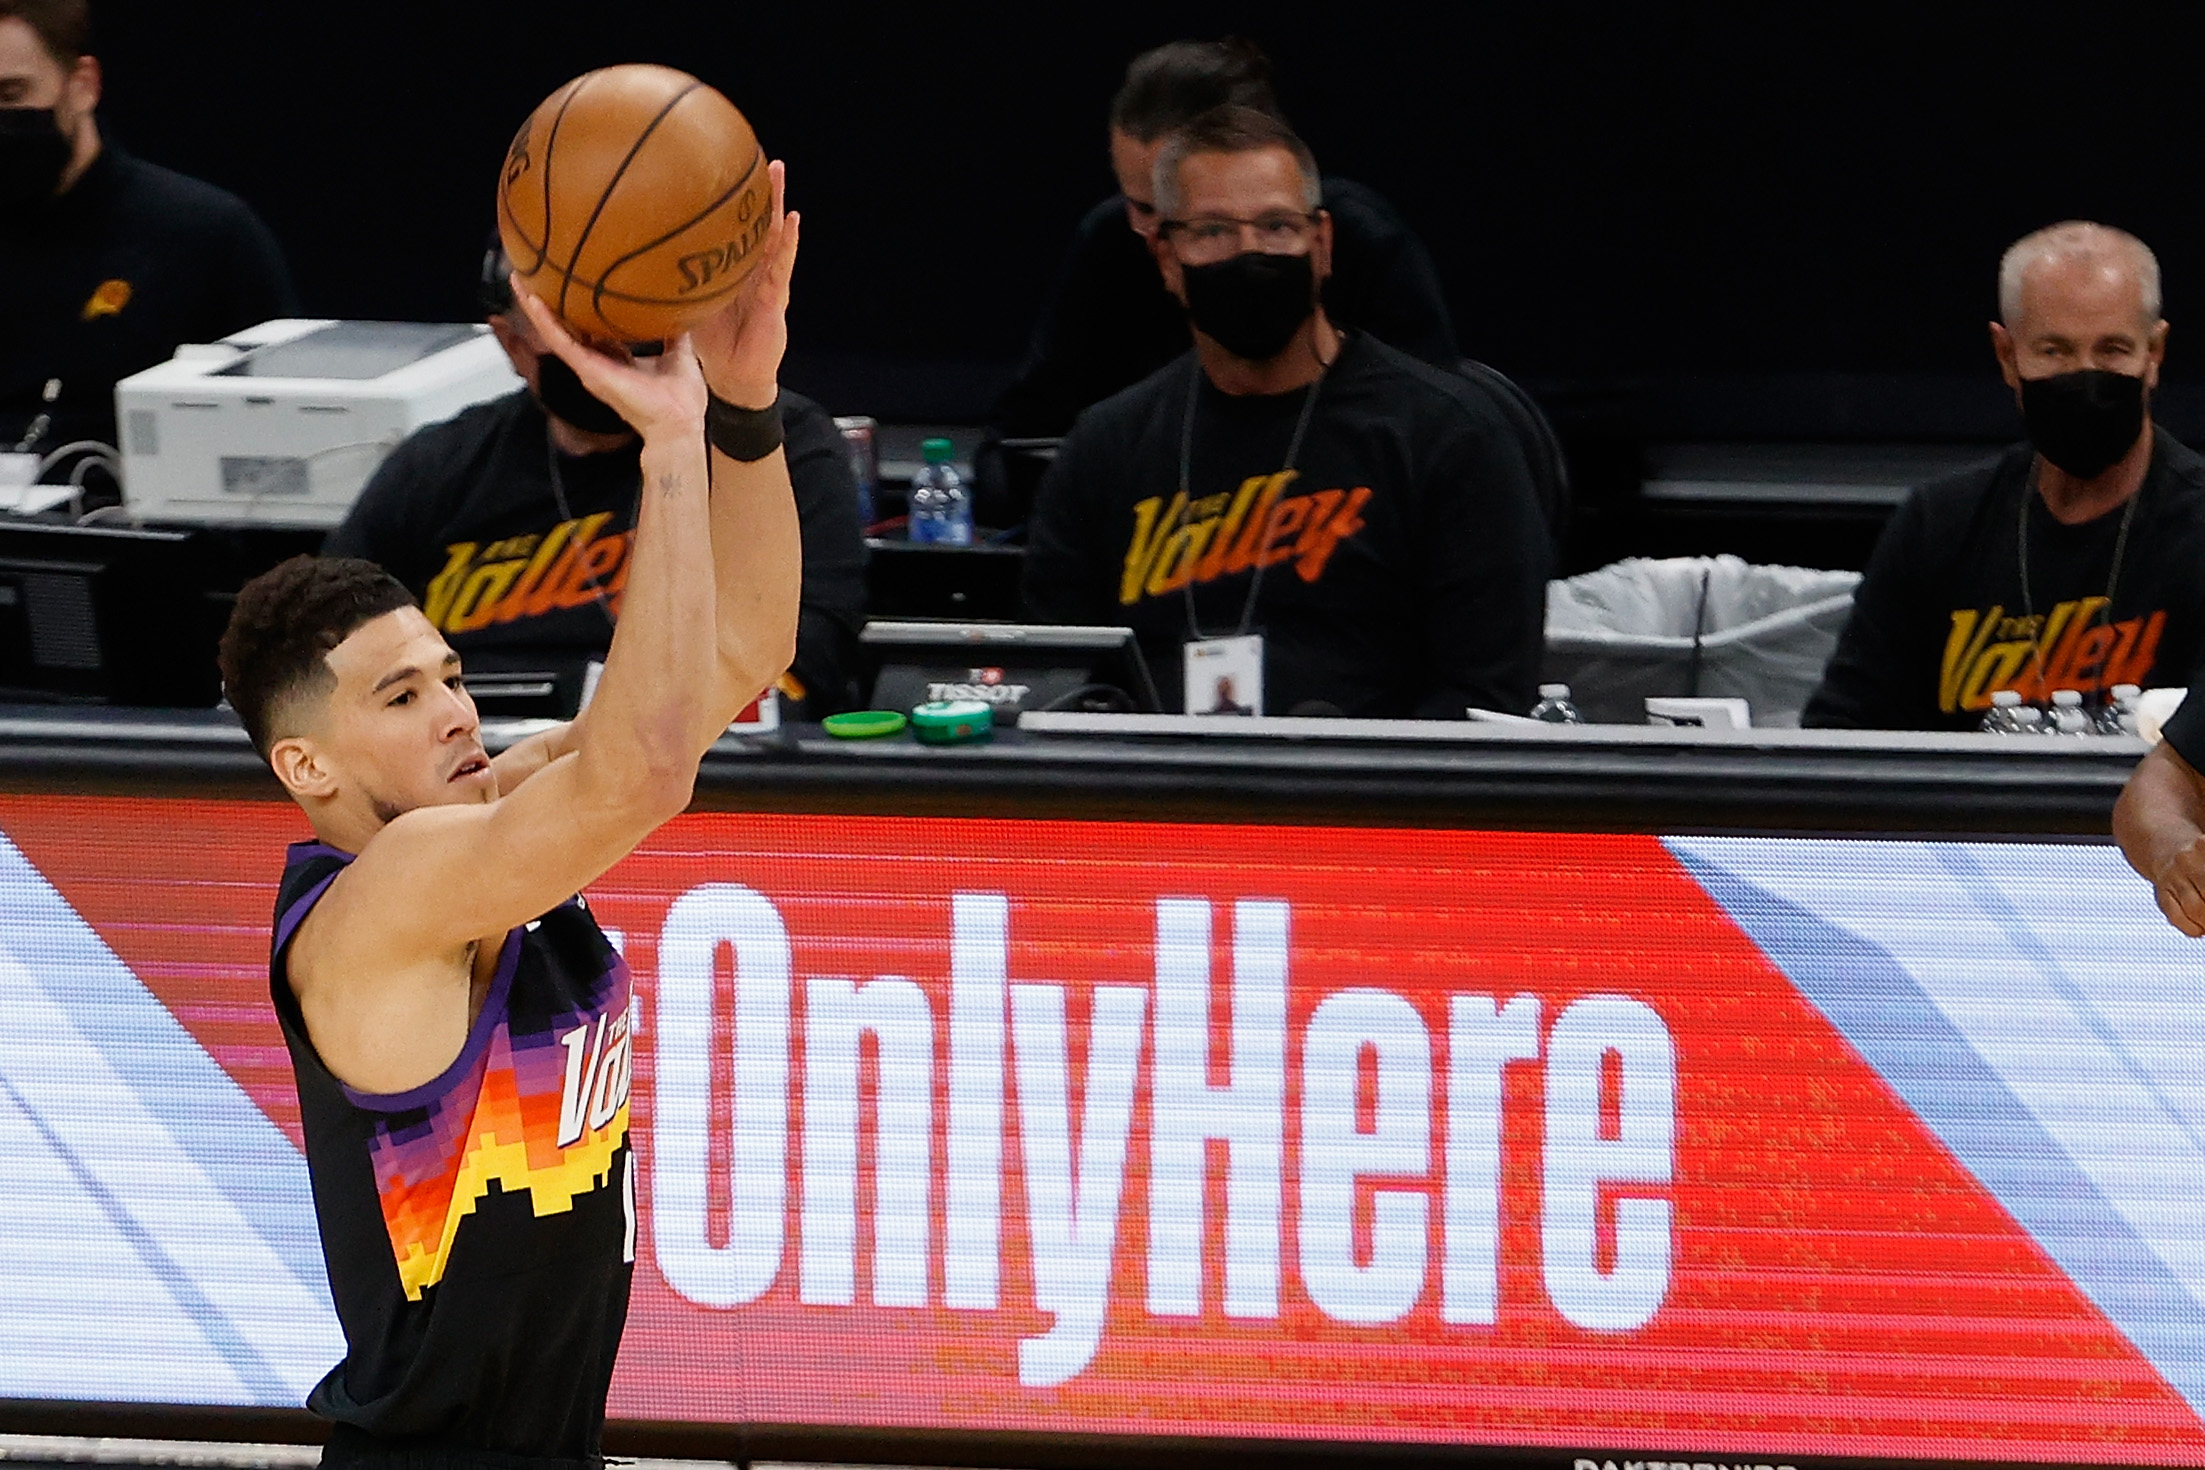 Devin Booker #1 of the Phoenix Suns attempts a shot against the Utah Jazz during the first half of the NBA game at Phoenix Suns Arena on April 07, 2021 in Phoenix, Arizona. The Suns defeated the Jazz 117-113 in overtime.